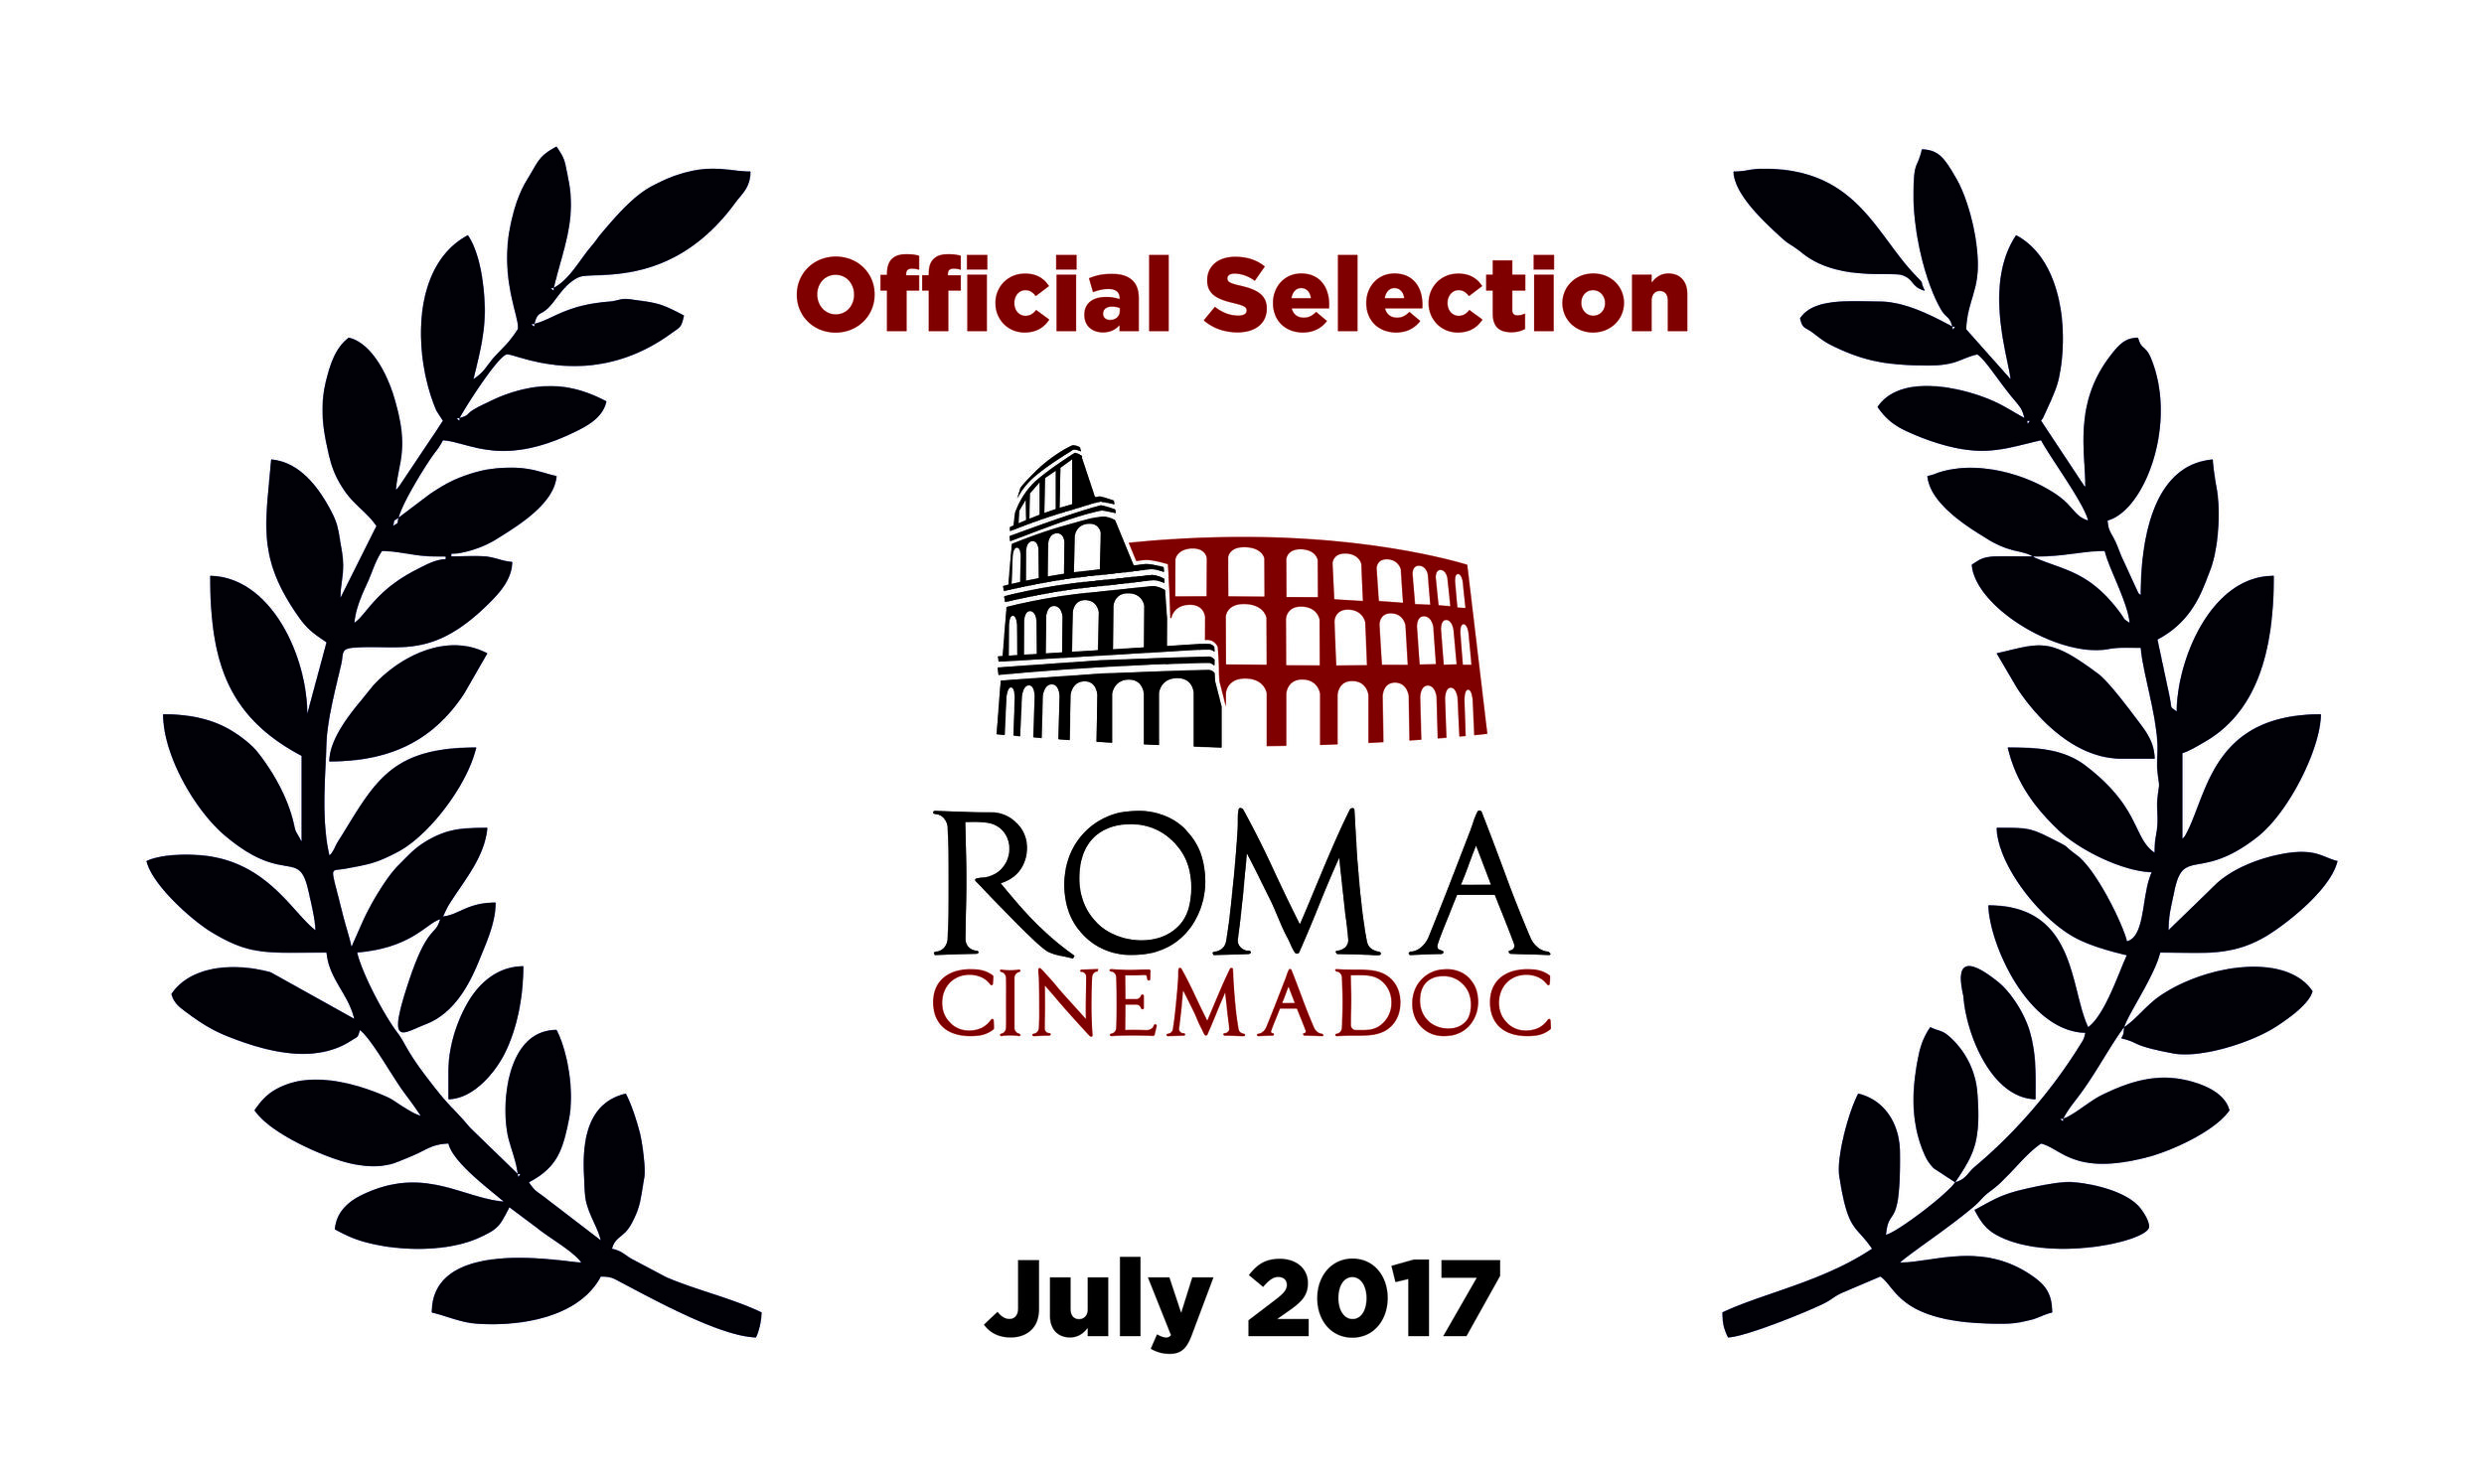 roma-cinemadoc-official-selection-july-2017.jpg